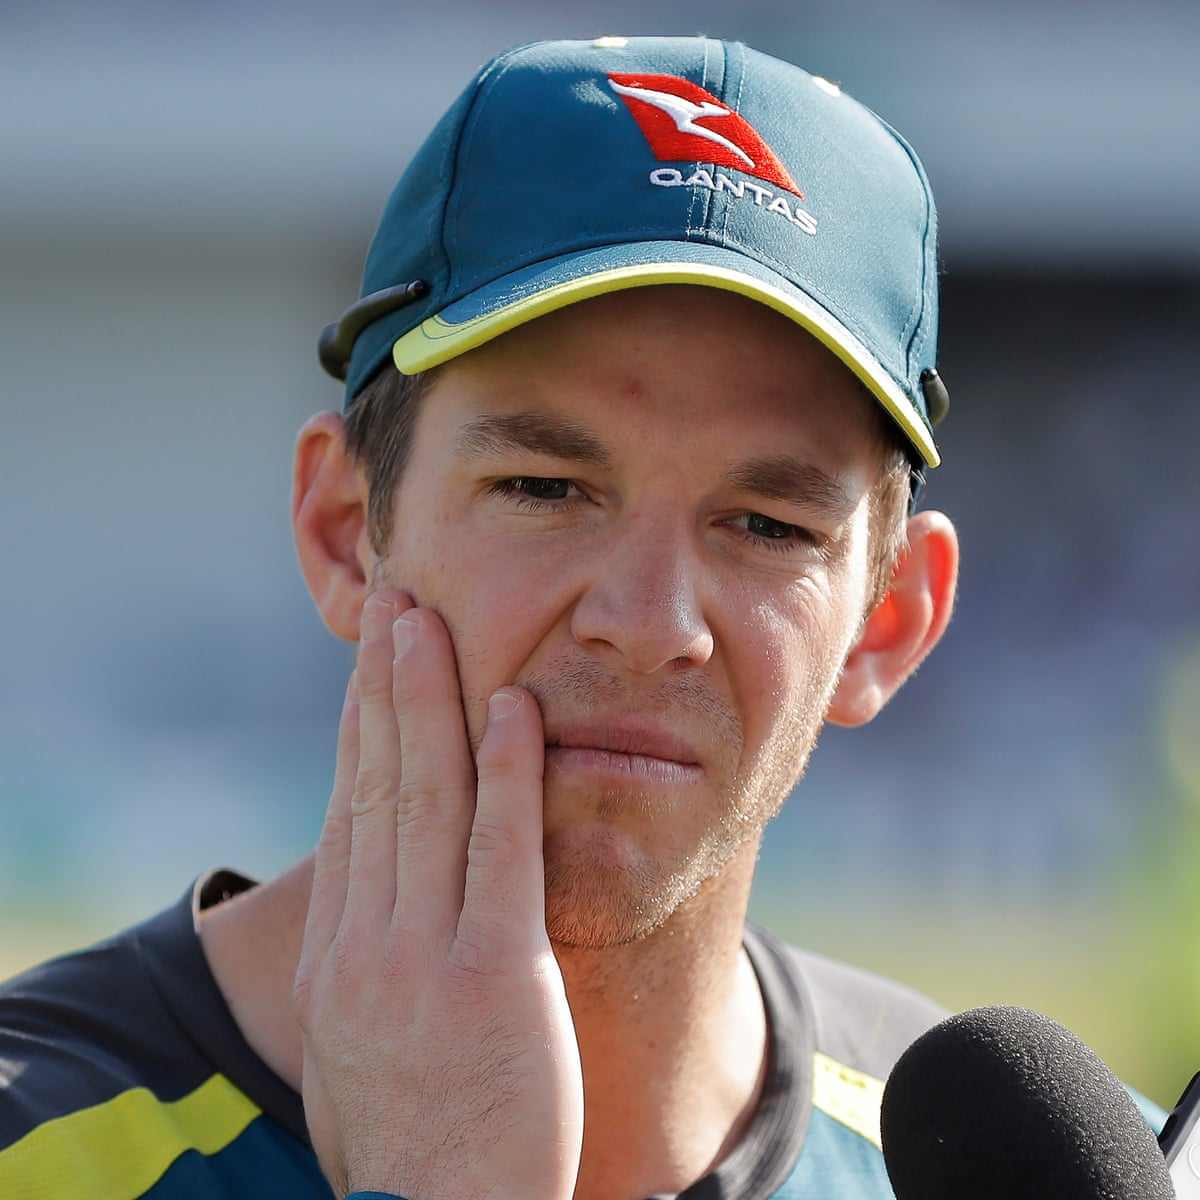 No Gain For Australia In Putting Tim Paine In Dock After Headingley Loss Australia Cricket Team The Guardian